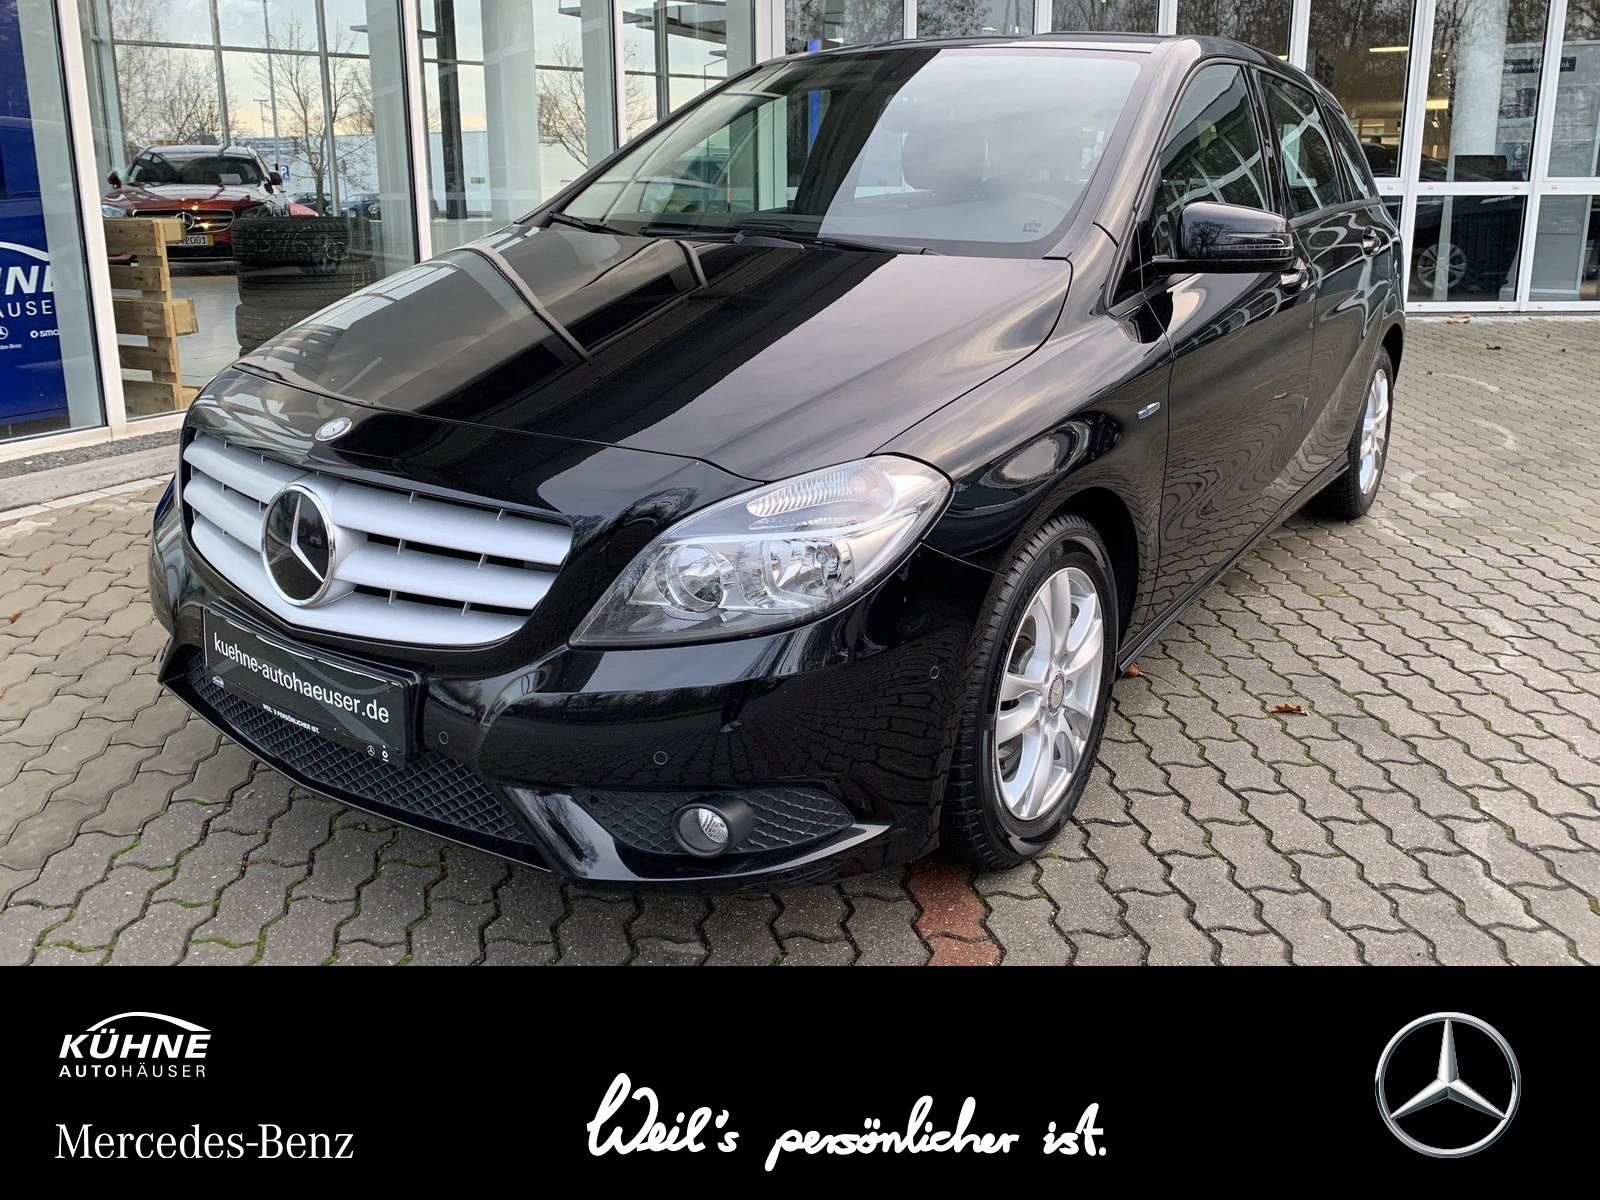 Mercedes-Benz B 180 LED+Navi+Klima+Media-Interface+Sitzkomfort, Jahr 2012, petrol